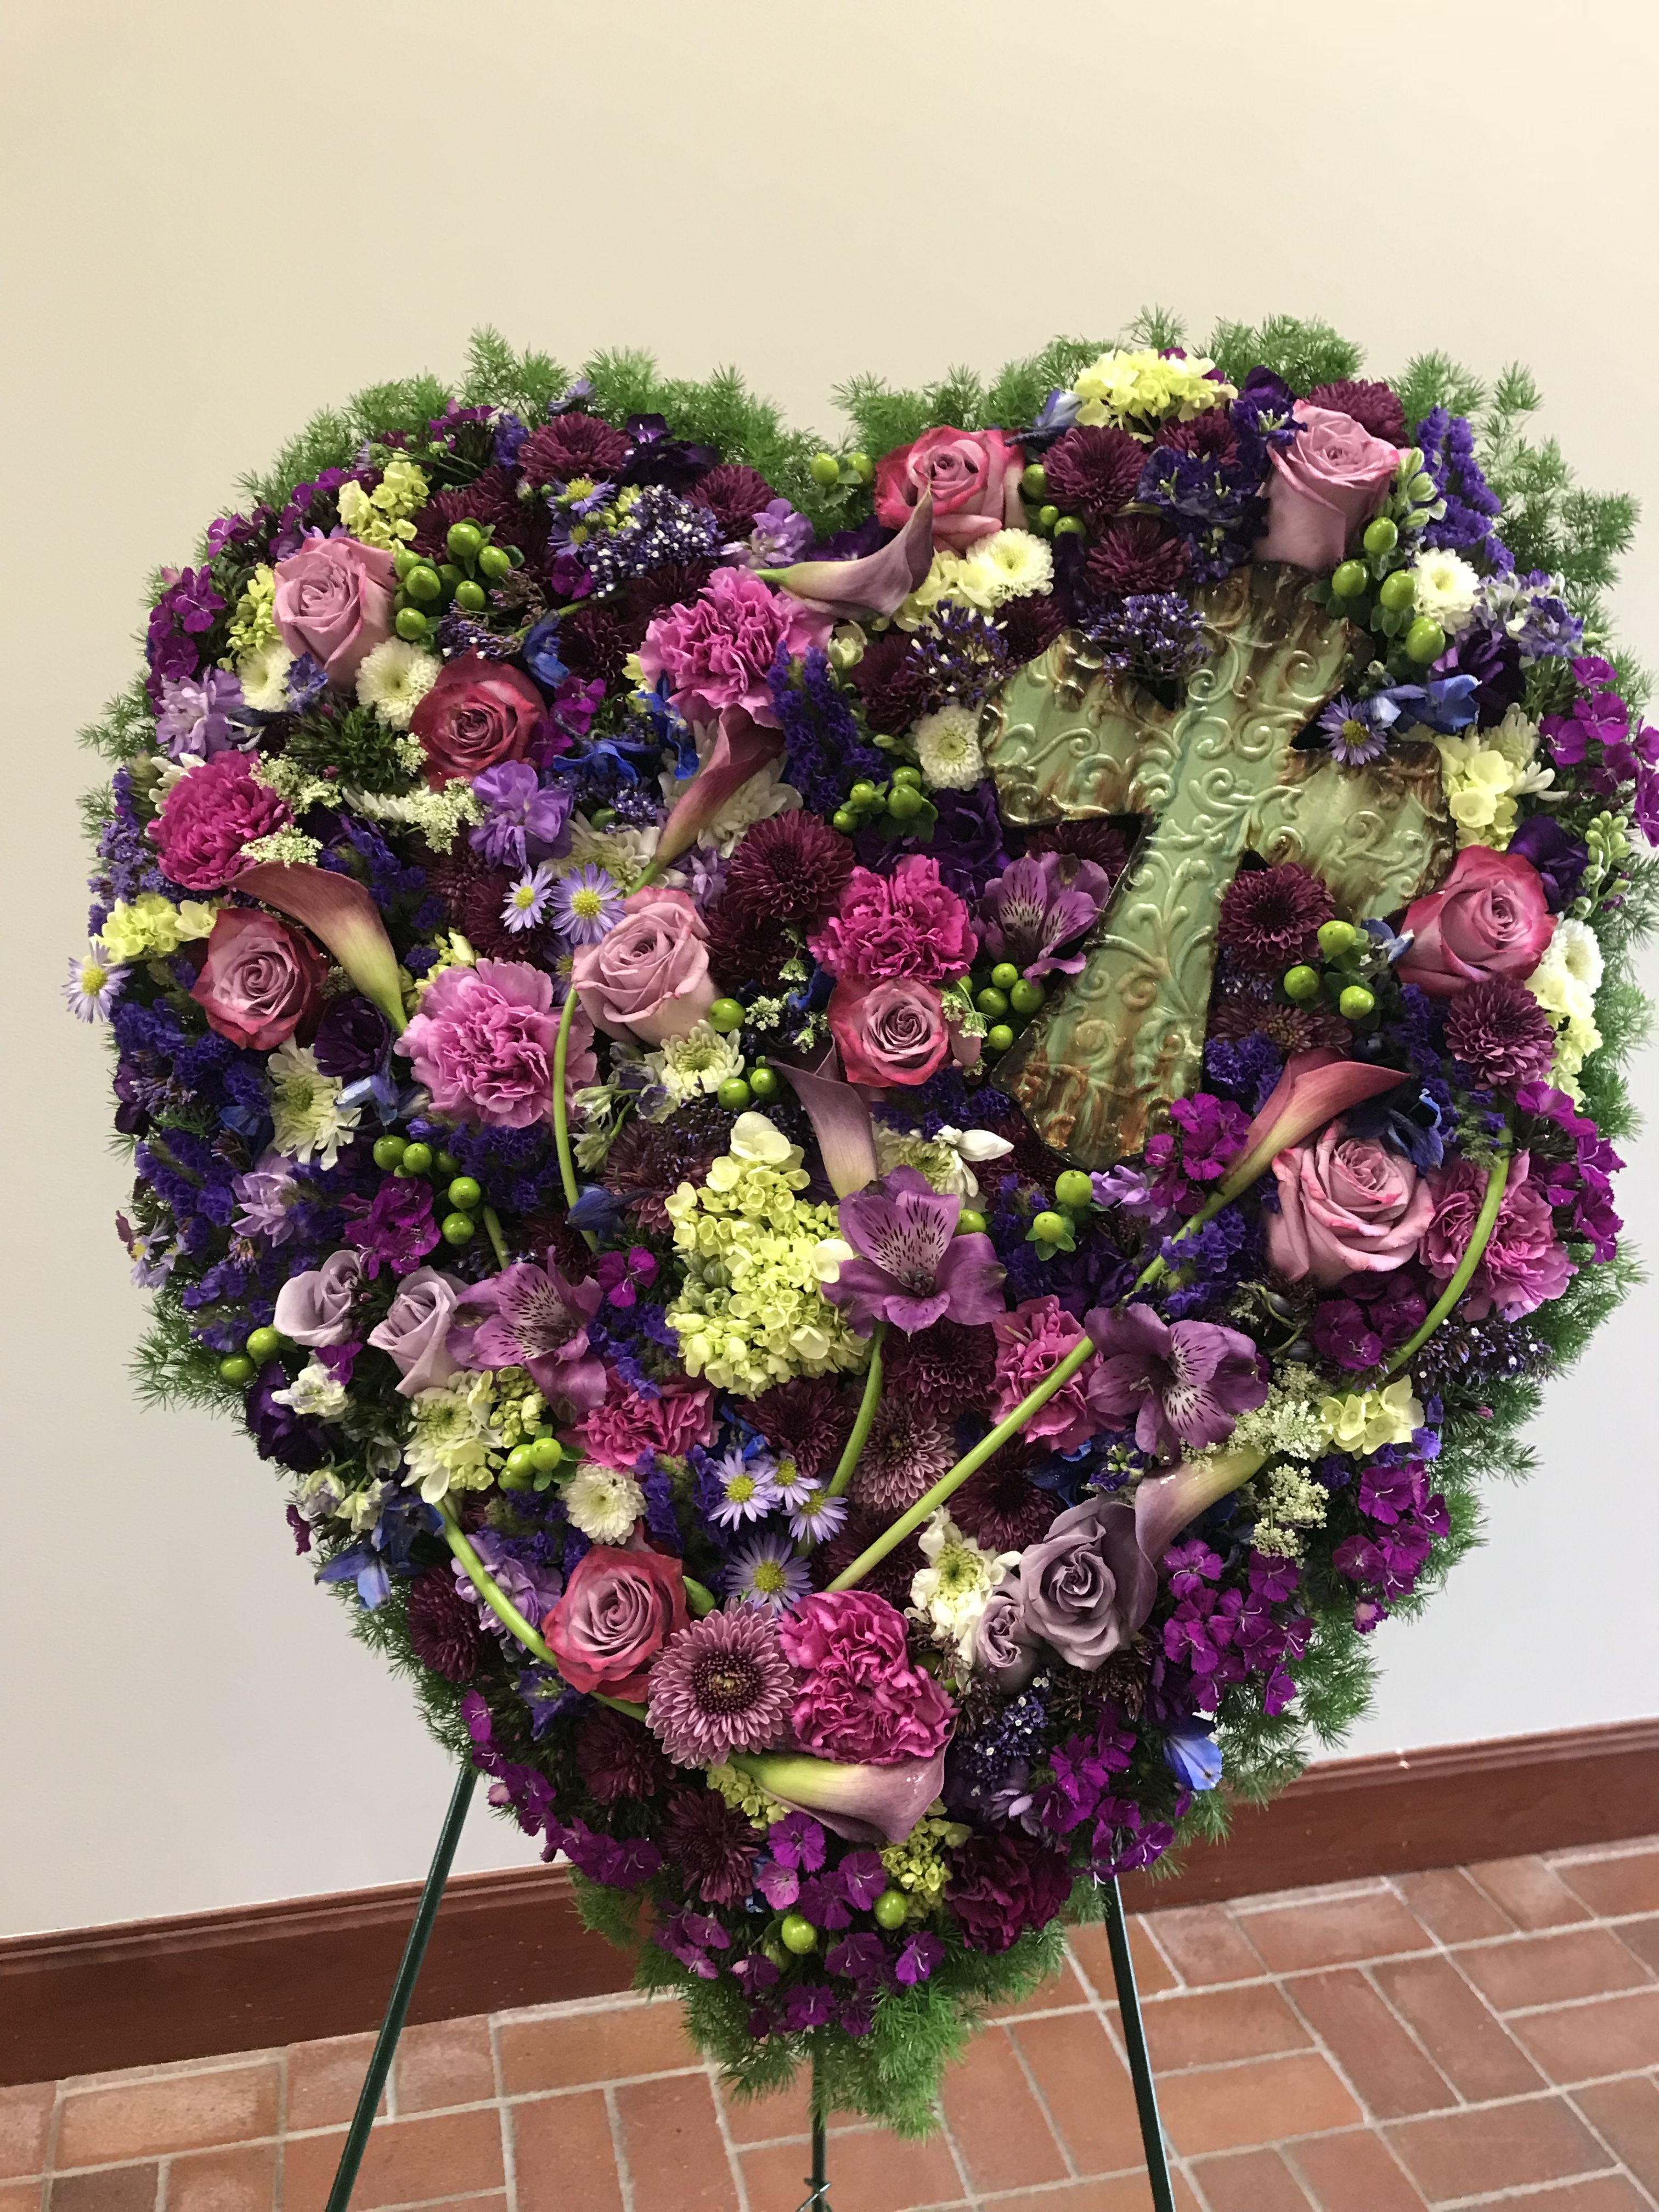 Pin By Dottie At Kds Florist On Funeral Flowers Pinterest